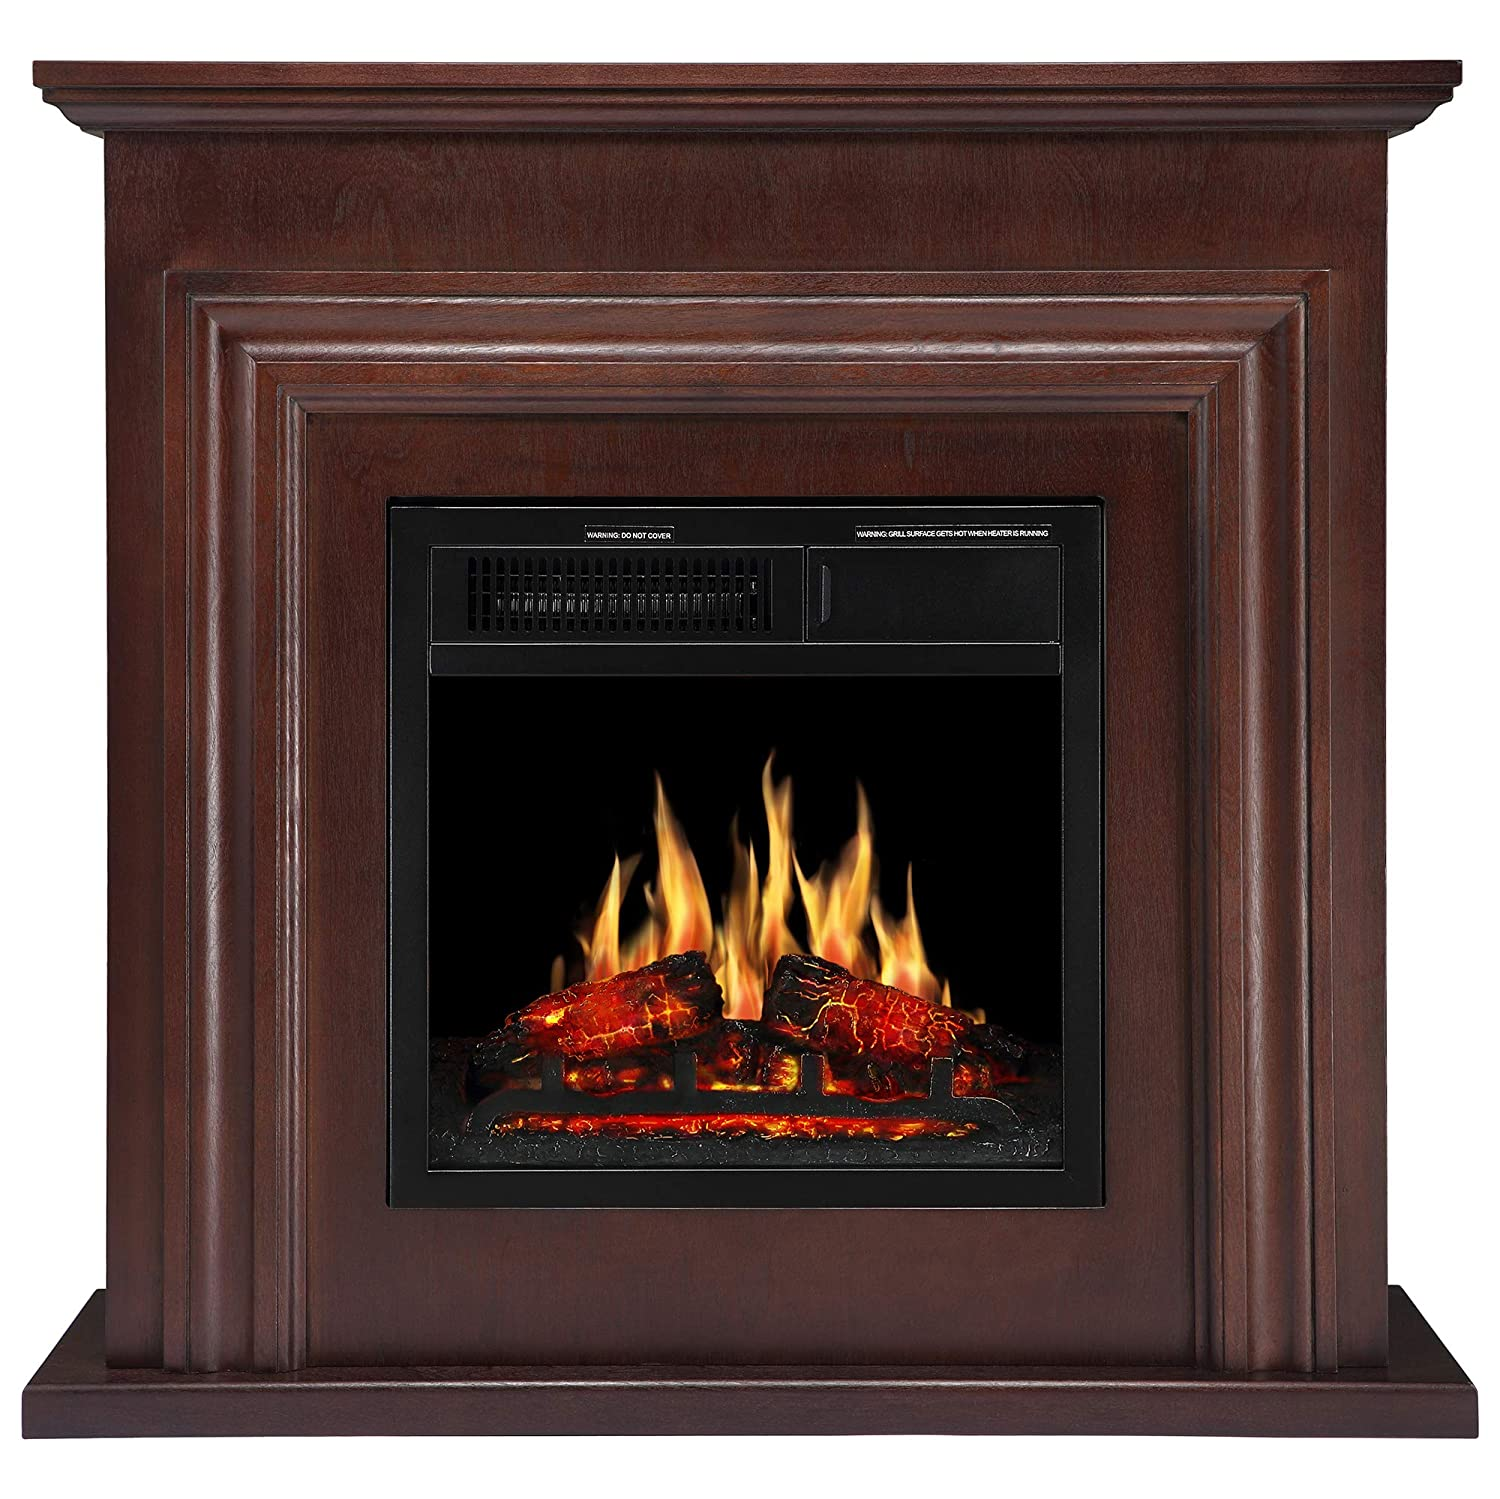 JAMFLY 36'' Wood Electric Fireplace Mantel Package - stone electric fireplace